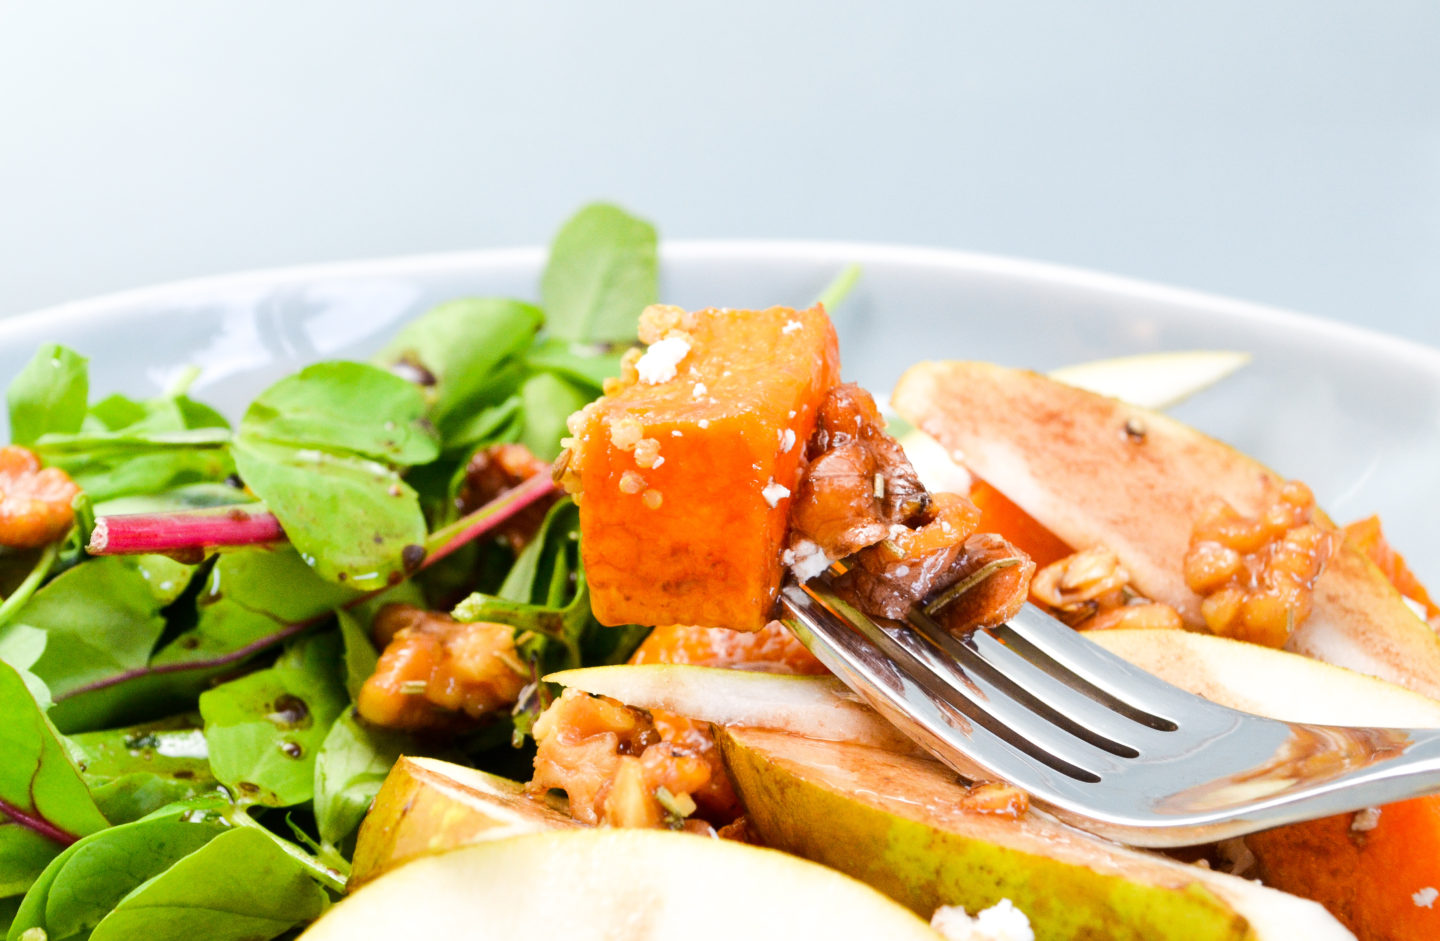 Butternut squash and walnut salad